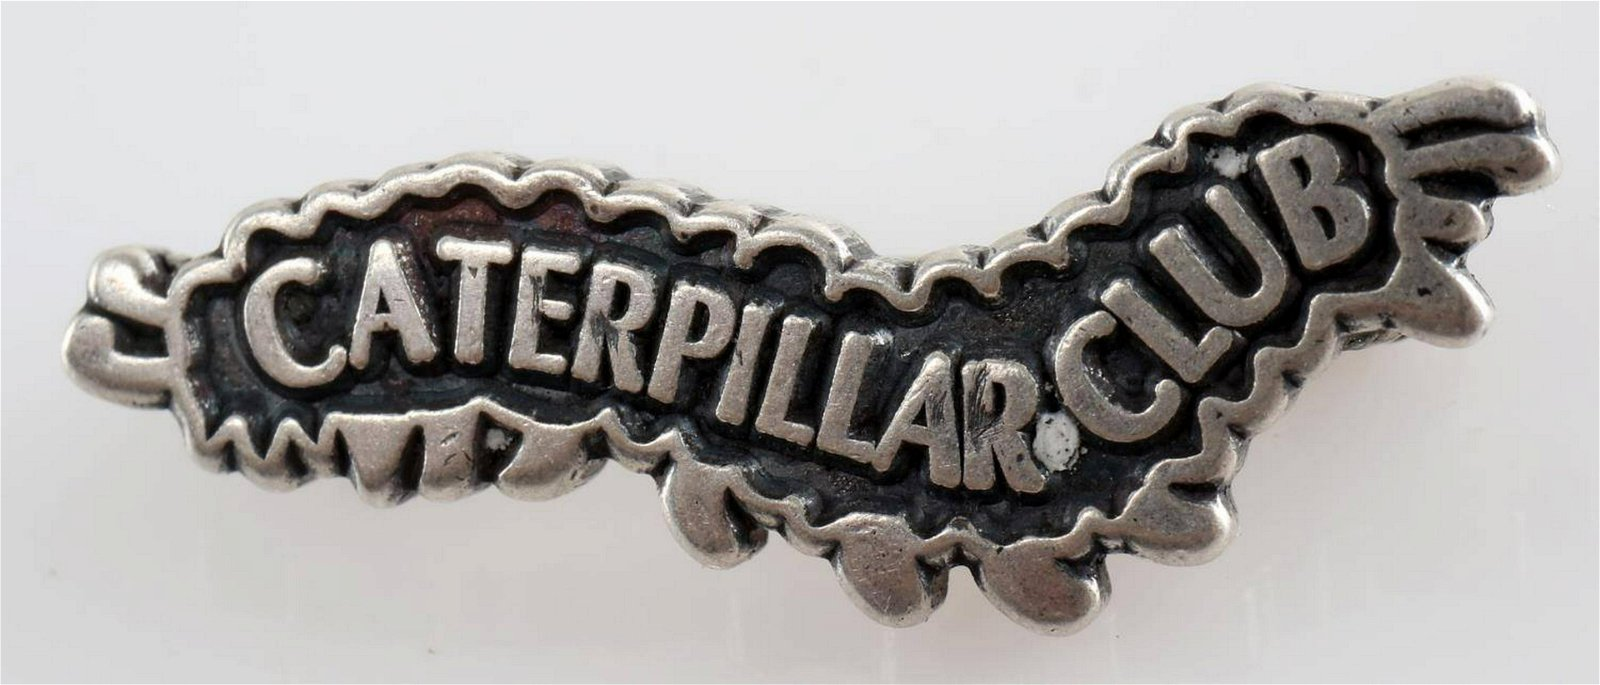 WWII US ARMY AIR FORCE CATERPILLAR CLUB PIN